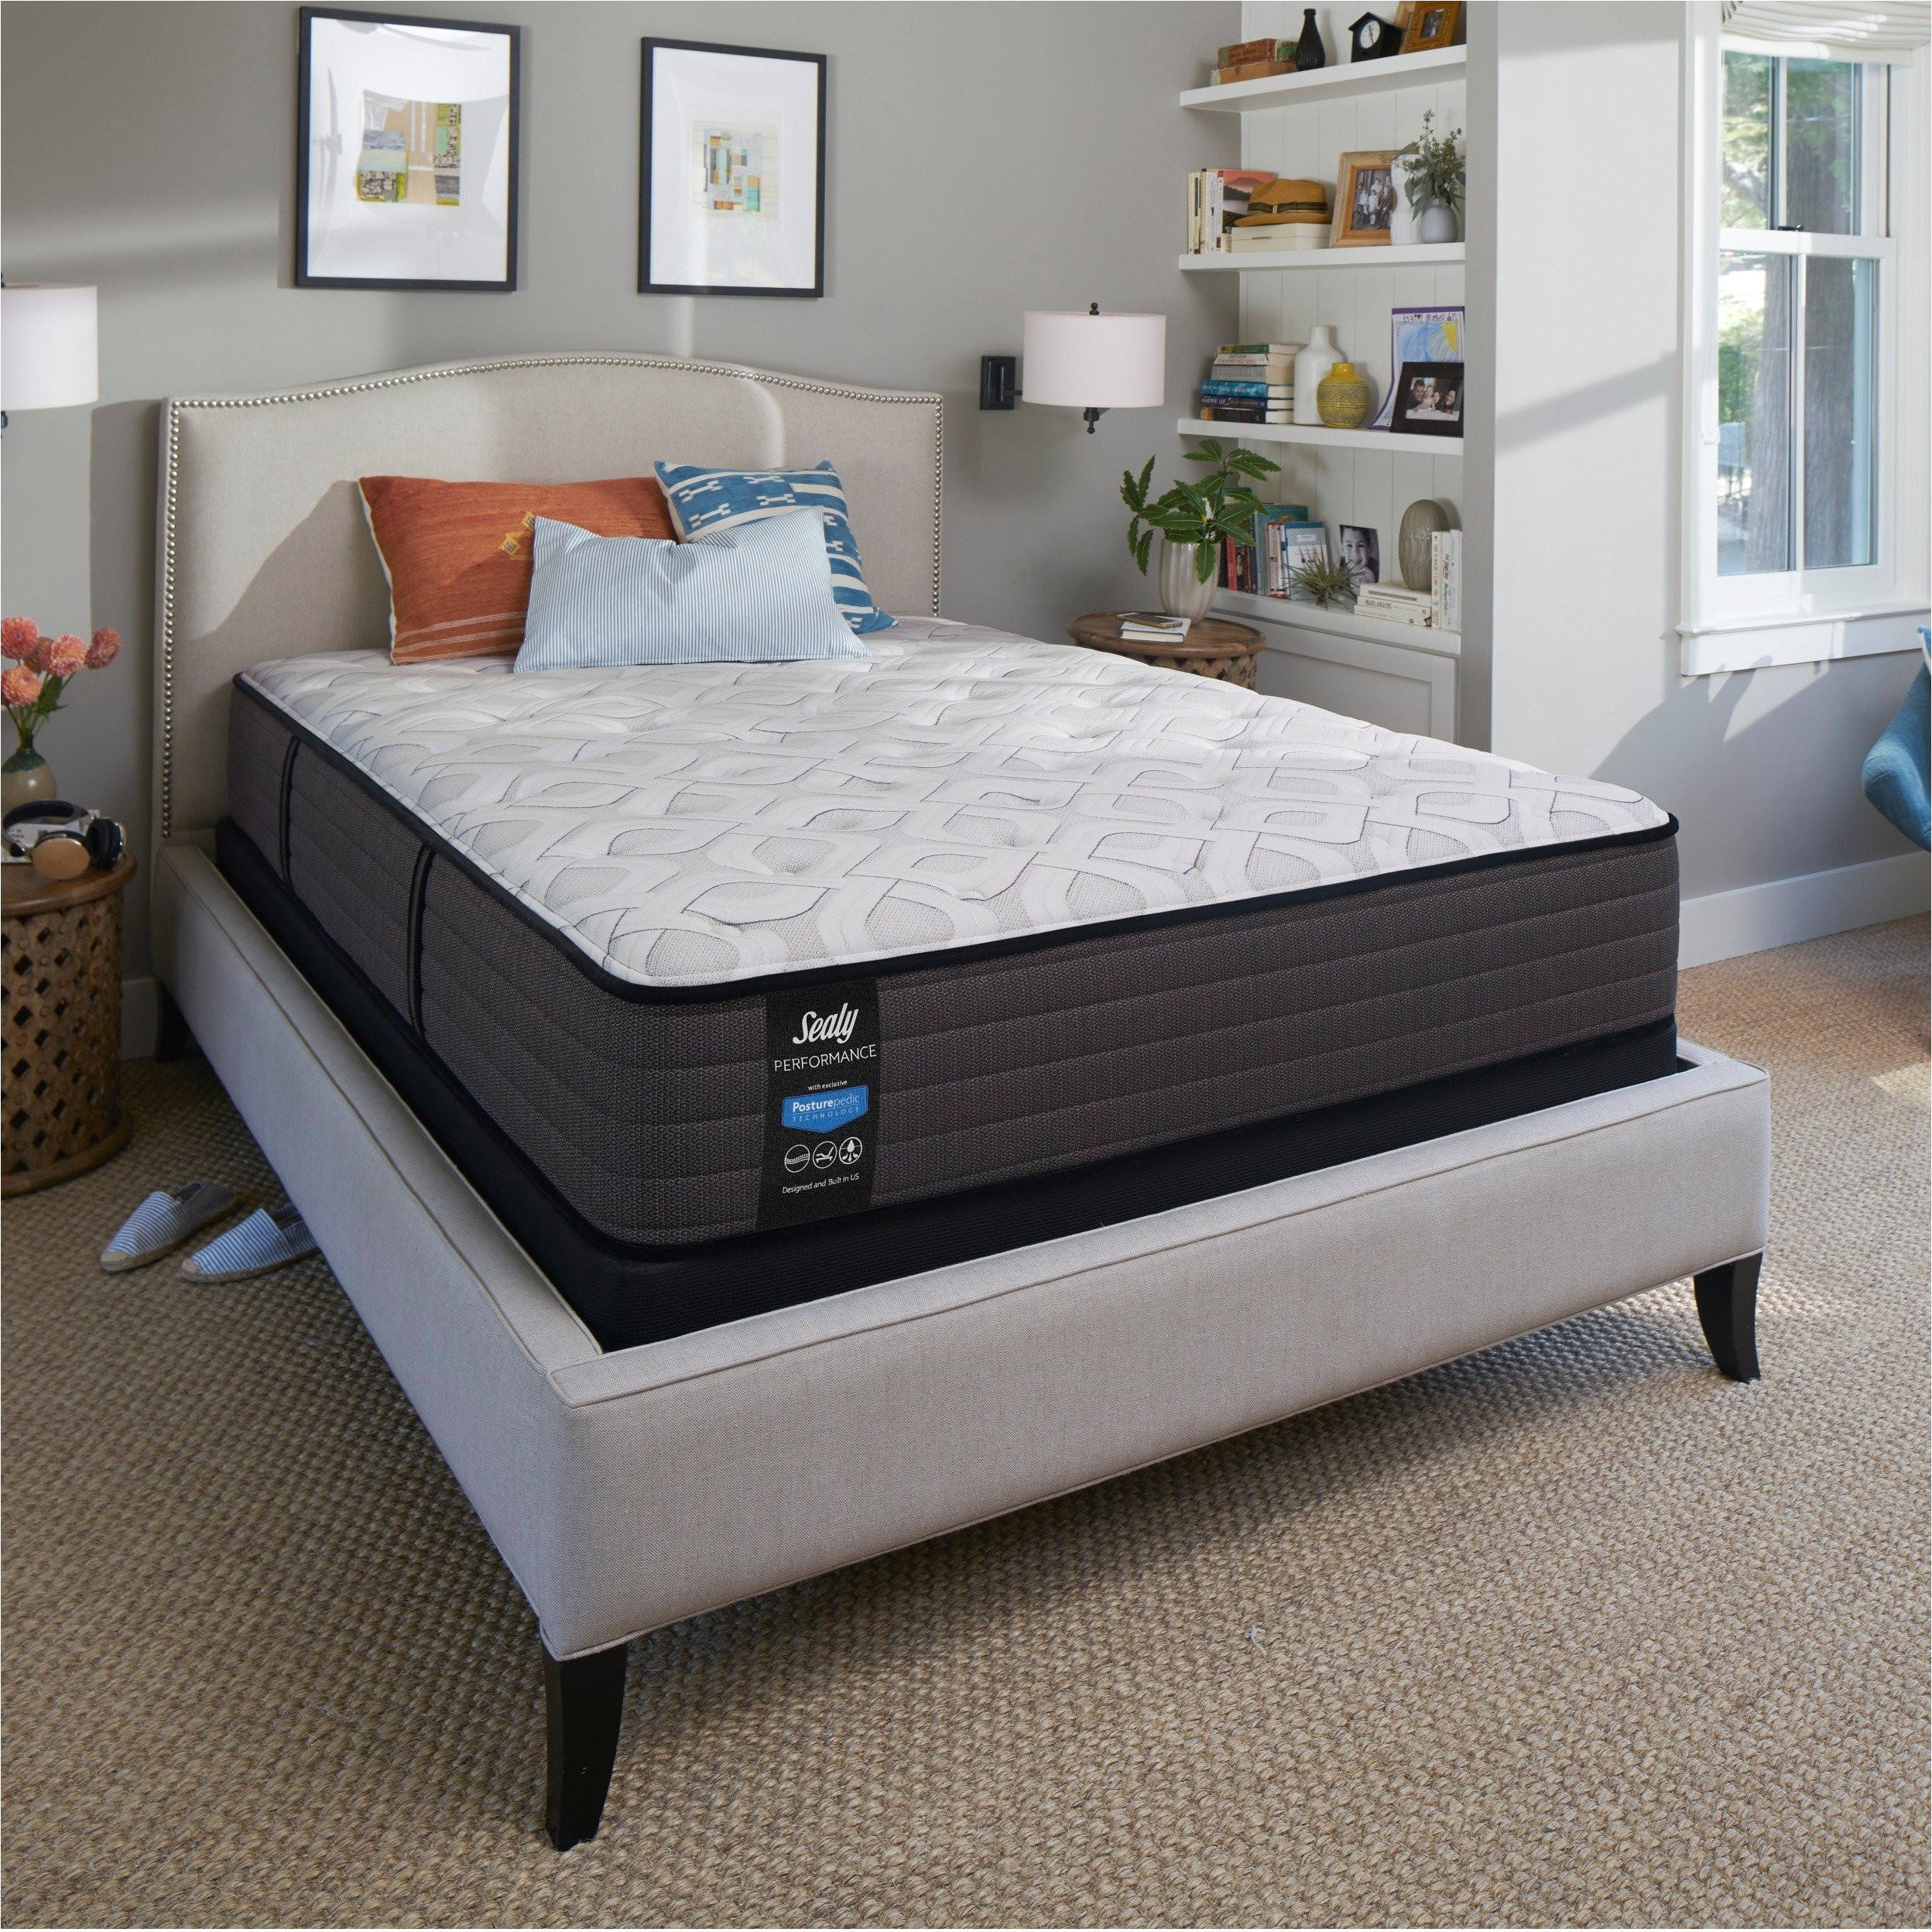 sealy response performance 11 inch cushion firm twin xl size mattress set free shipping today overstock 22931180